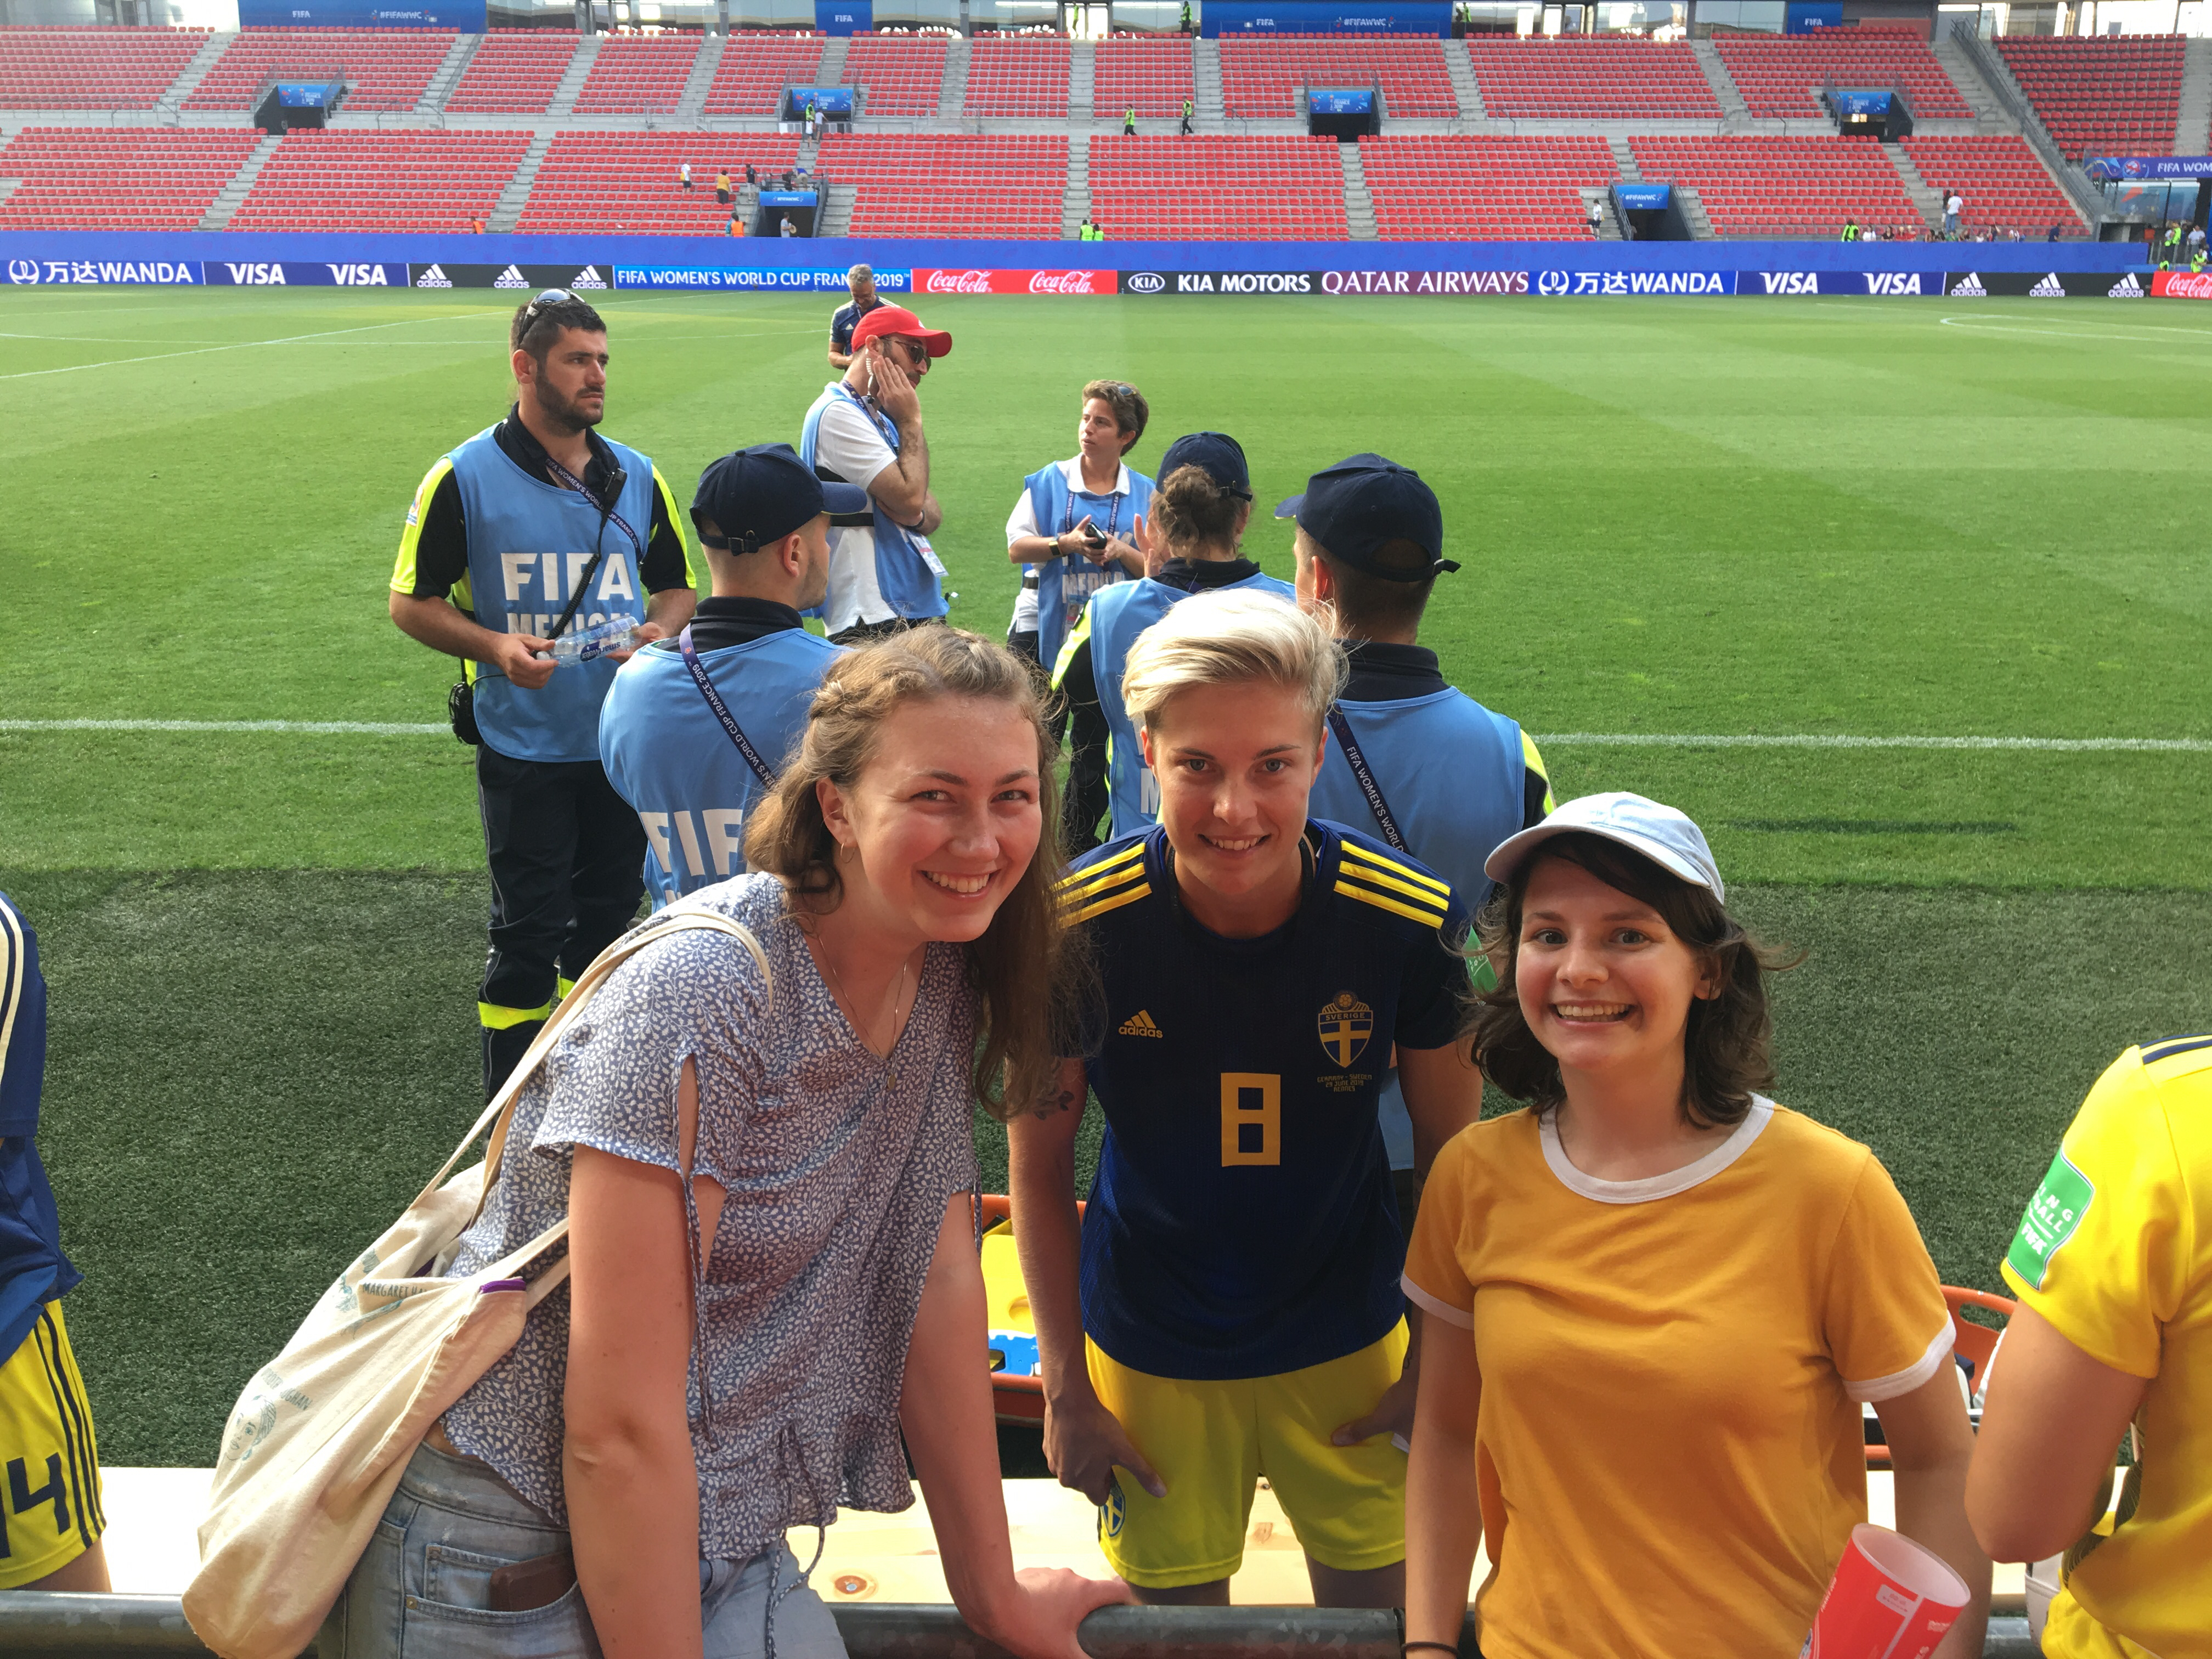 A Swedish soccer player and two fans next to the field